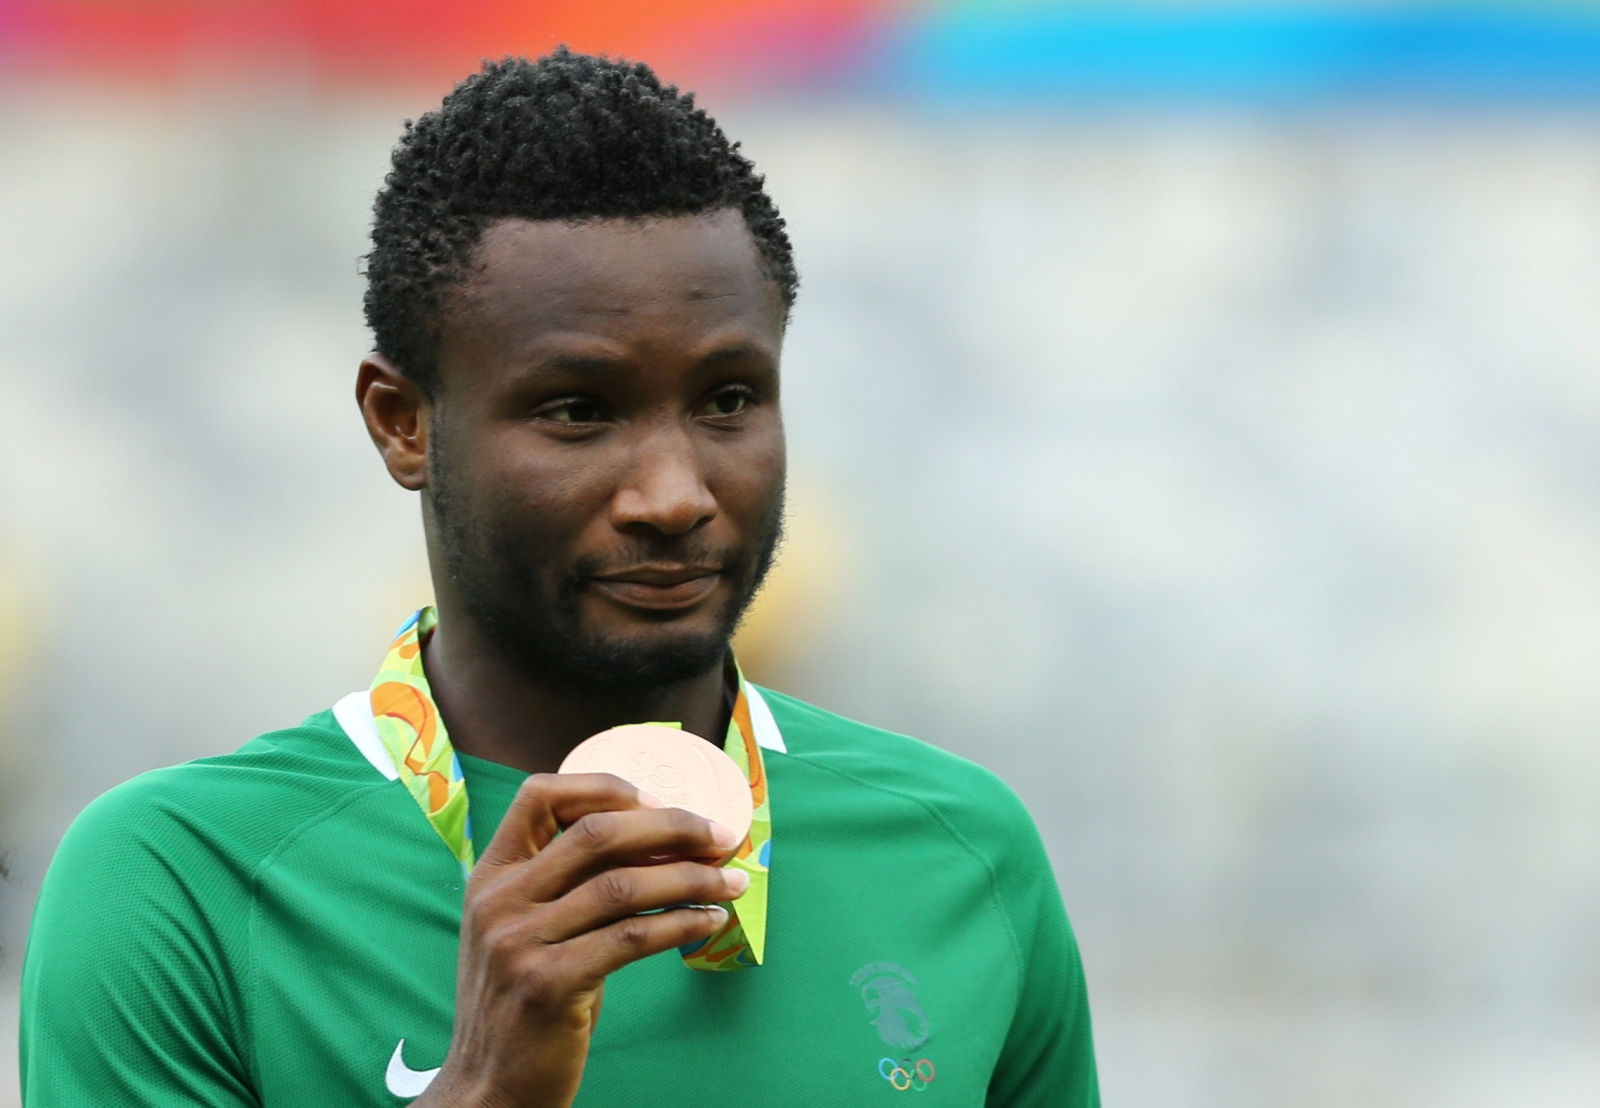 Chelsea Midfielder John Obi Mikel Holds Advanced Discussions Over January Move 1597379 furthermore Eden Hazard 2014 Fifa World Cup Belgium National F 1868249 besides Richest Football Players Brazil Best Famous Highest Paid Hottest Handsome Top 10 Popular List likewise 6782372003858452 as well A trio of young suedeheads on the corner of ulla. on oscar chelsea player